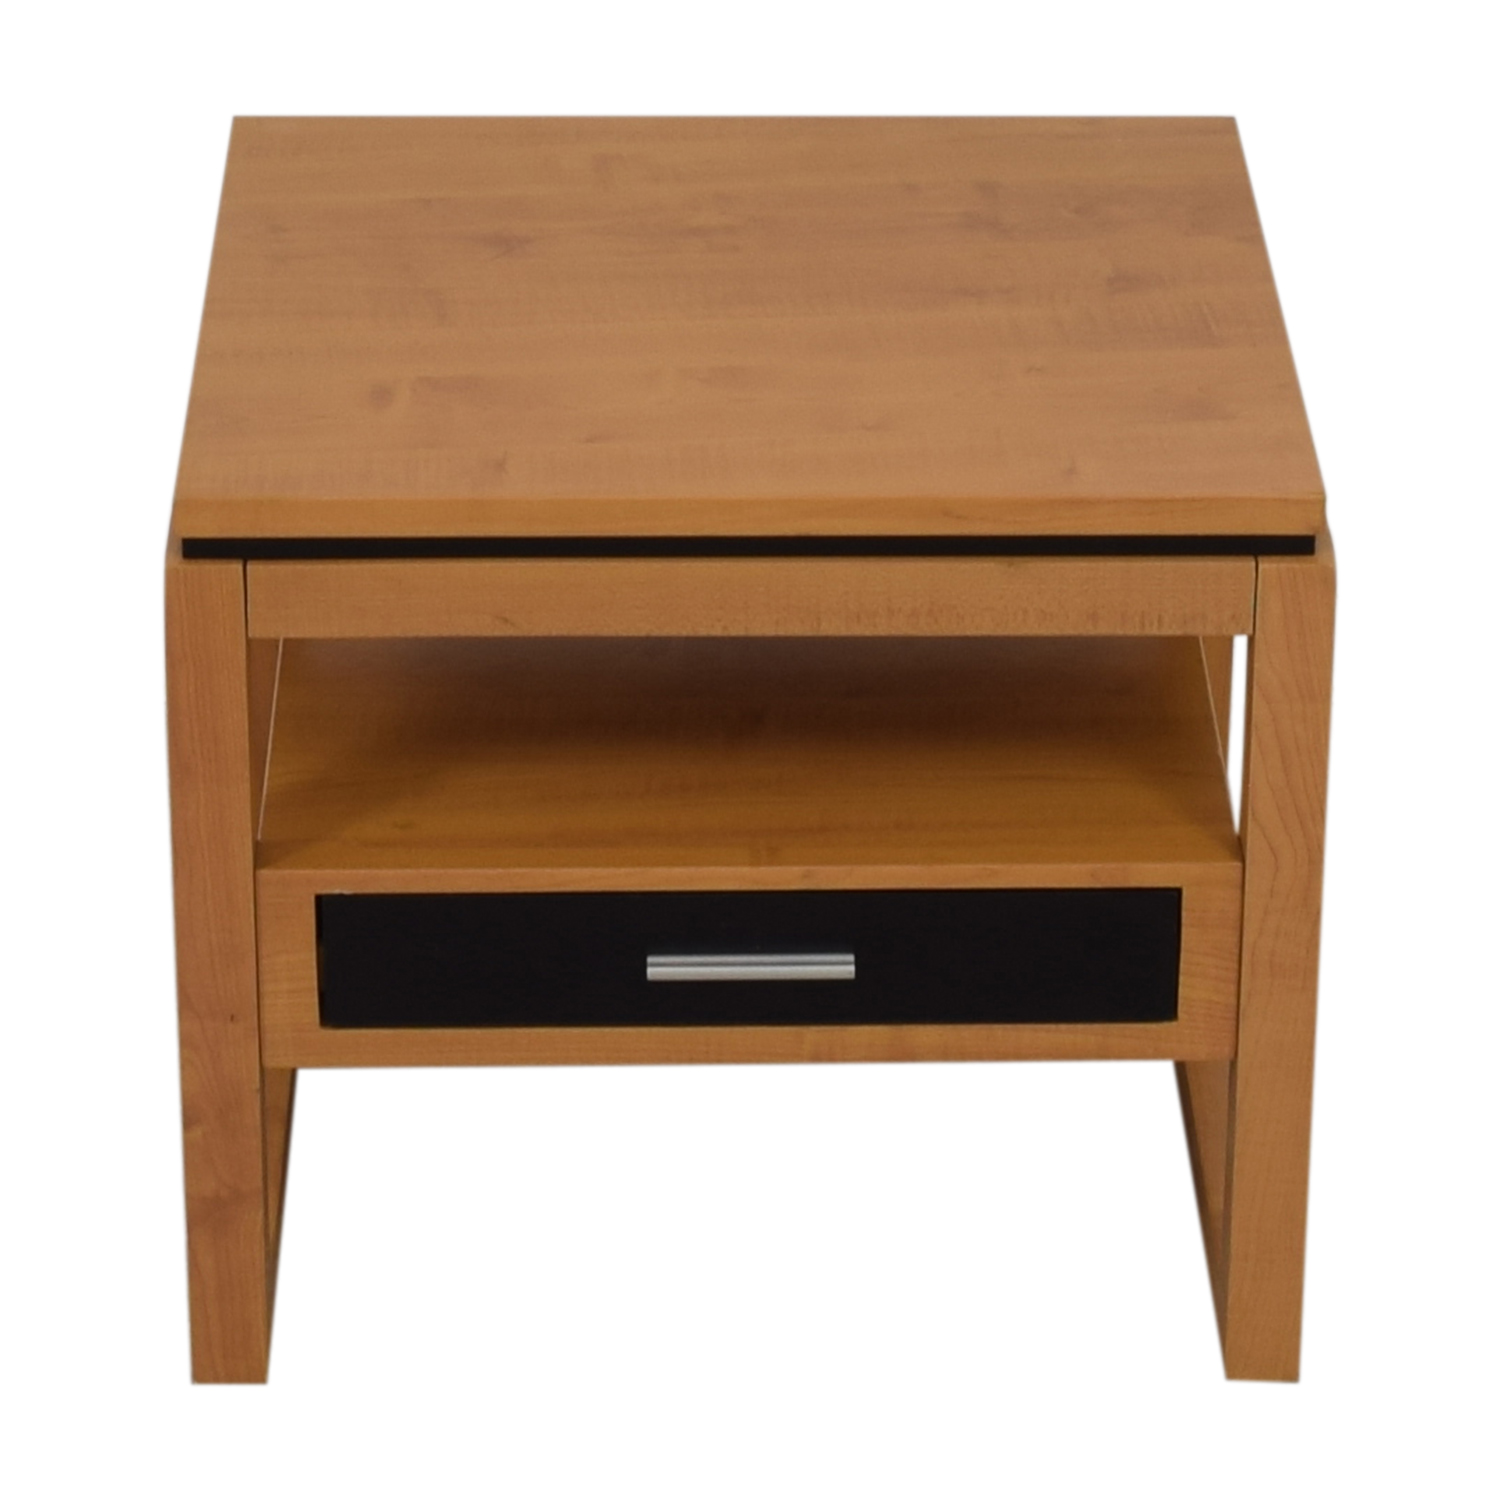 buy Coaster Black Single Drawer Natural Finish End Table Coaster Tables